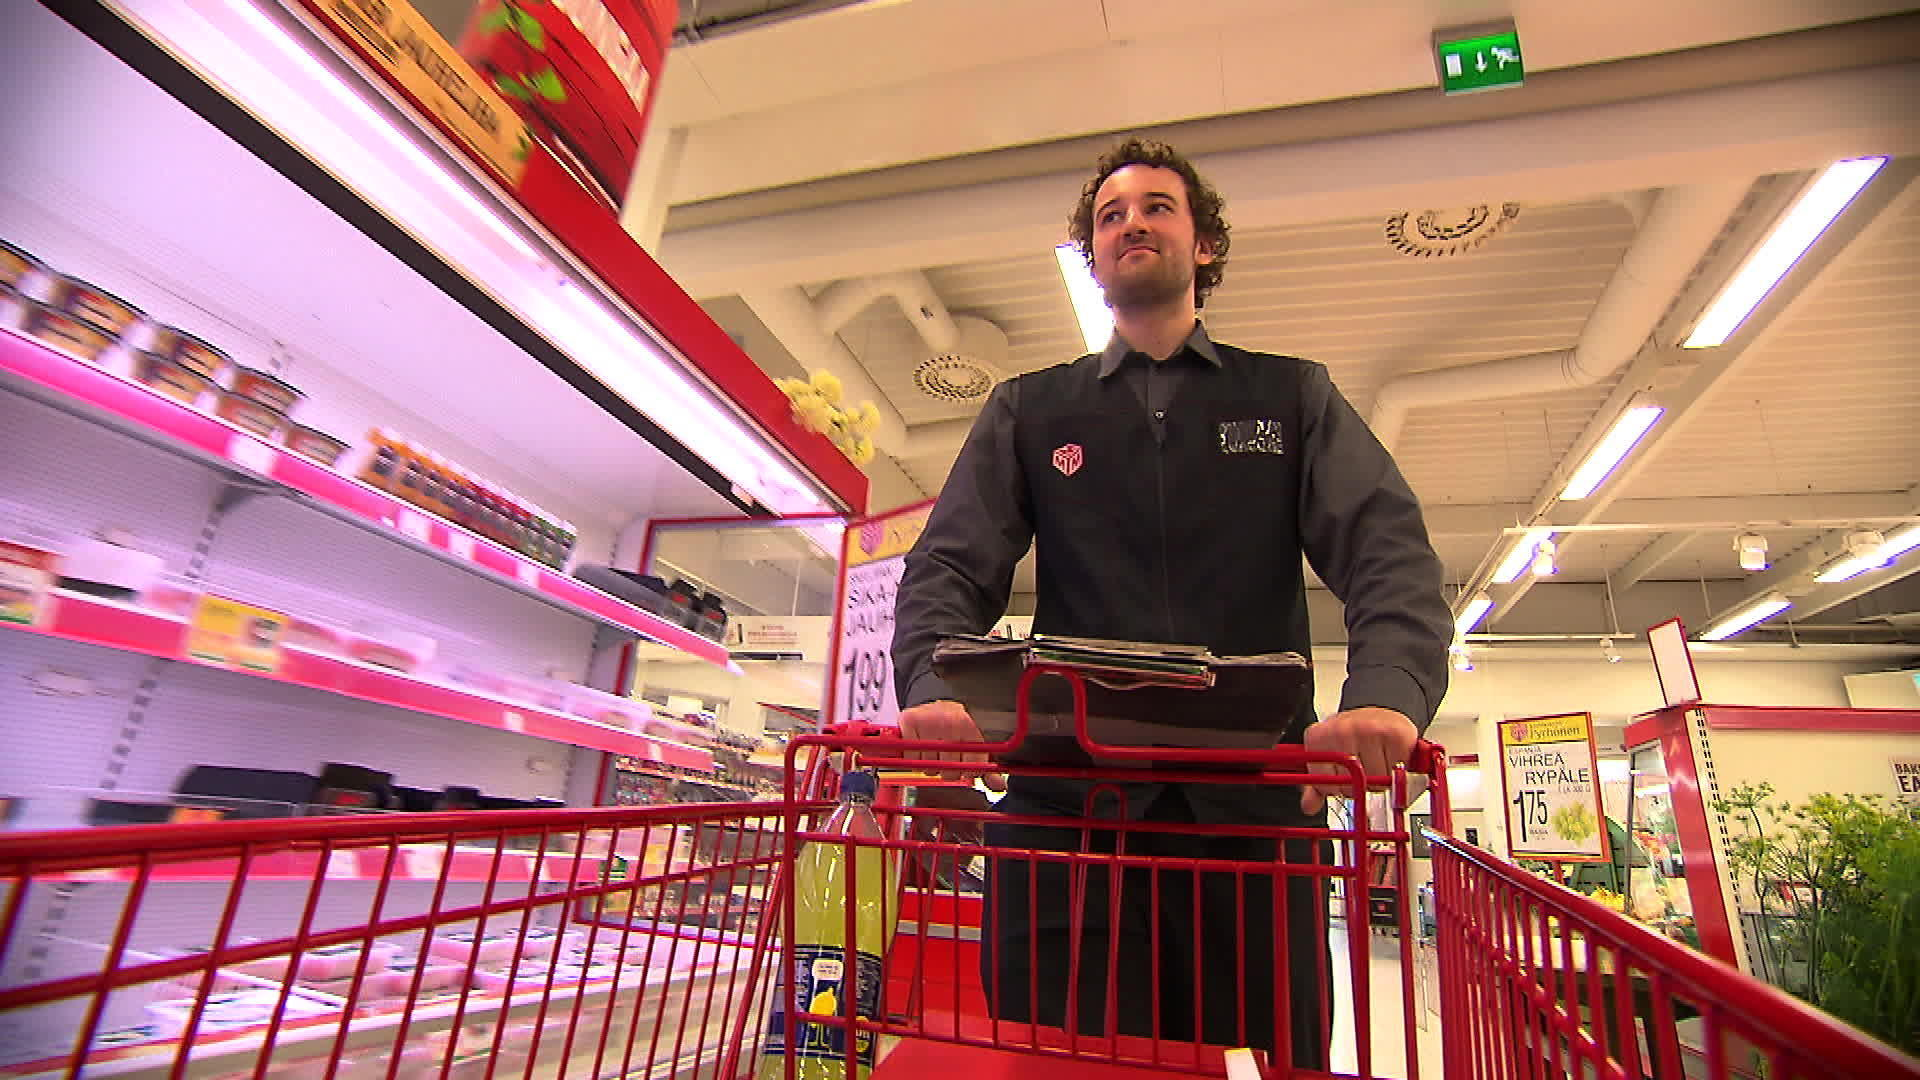 M Store – A Finnish pioneer in grocery delivery